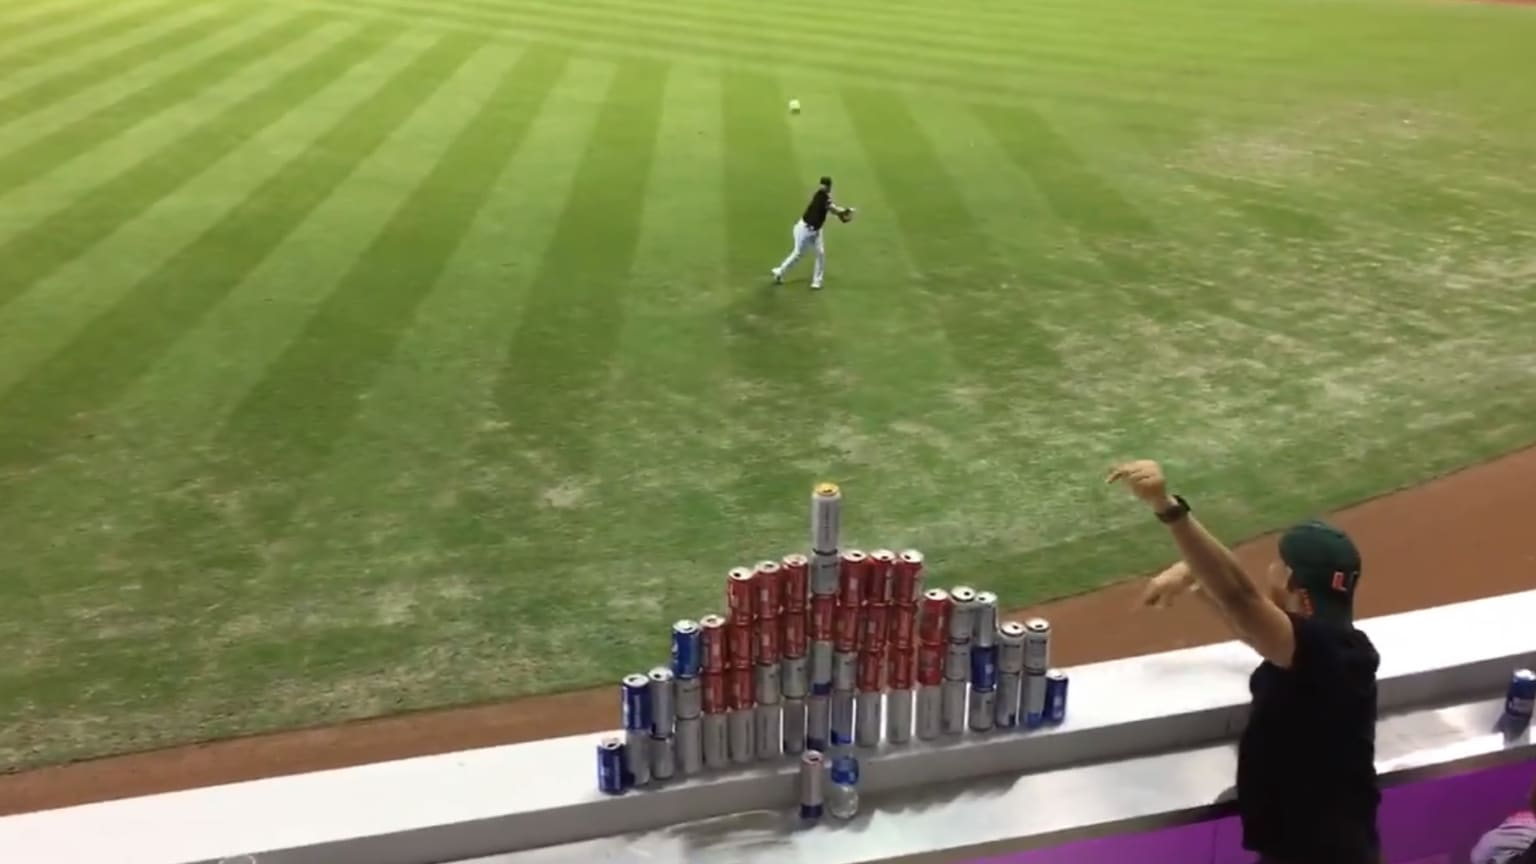 Austin Dean's beer can tower throw: The most detailed breakdown you'll find anywhere